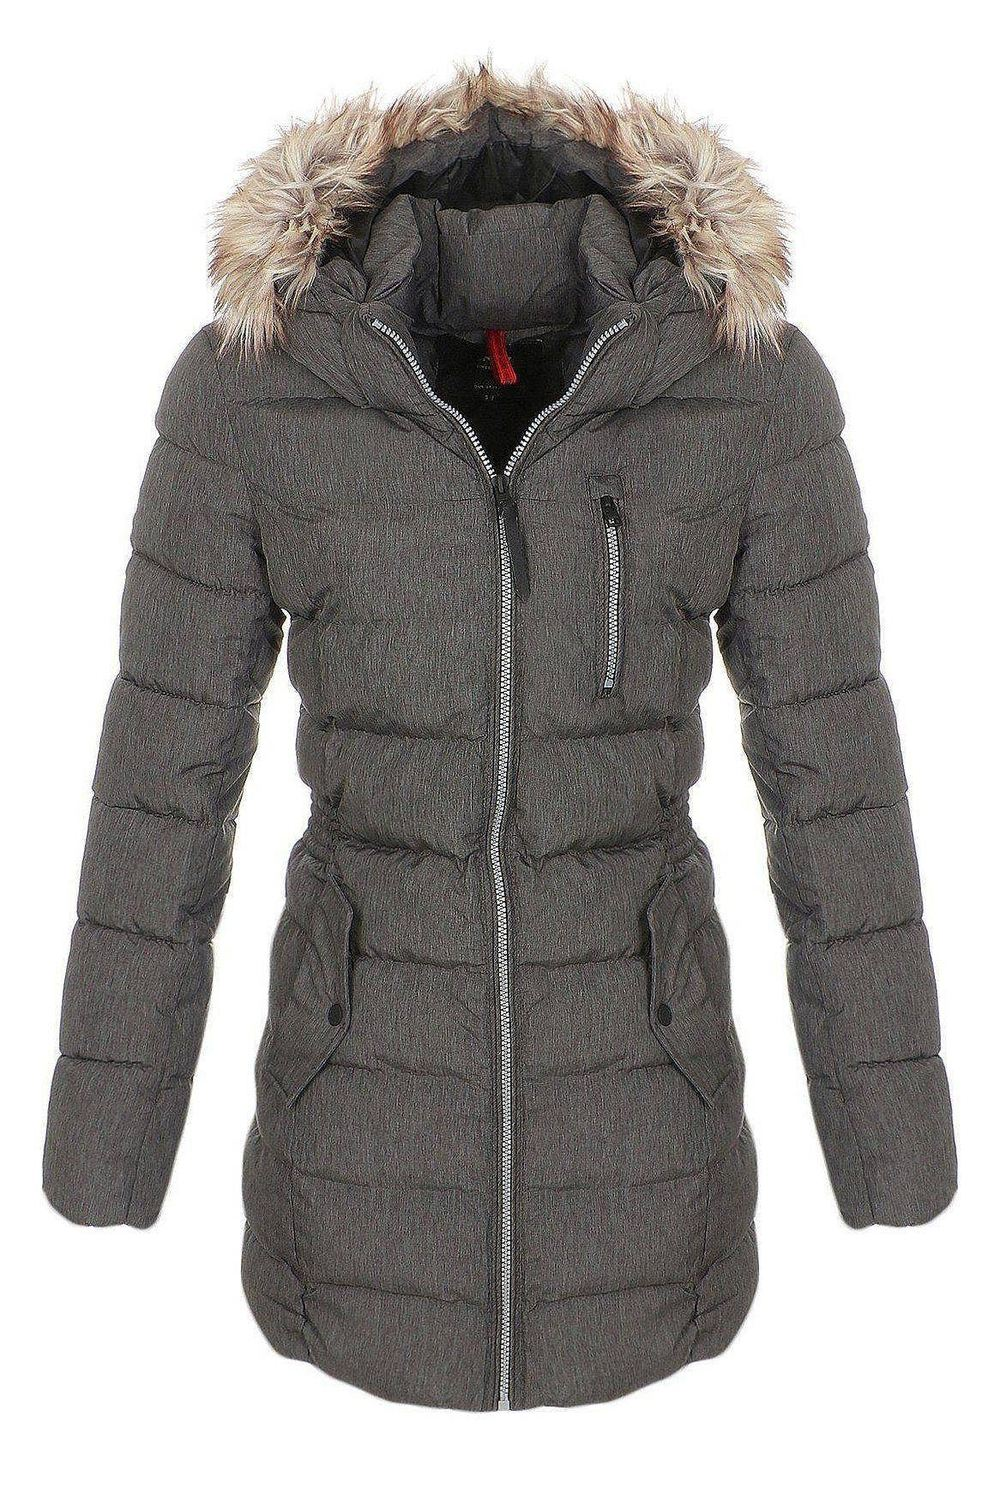 only damen wintermantel jacke dana mantel steppmantel xs s m l xl ebay